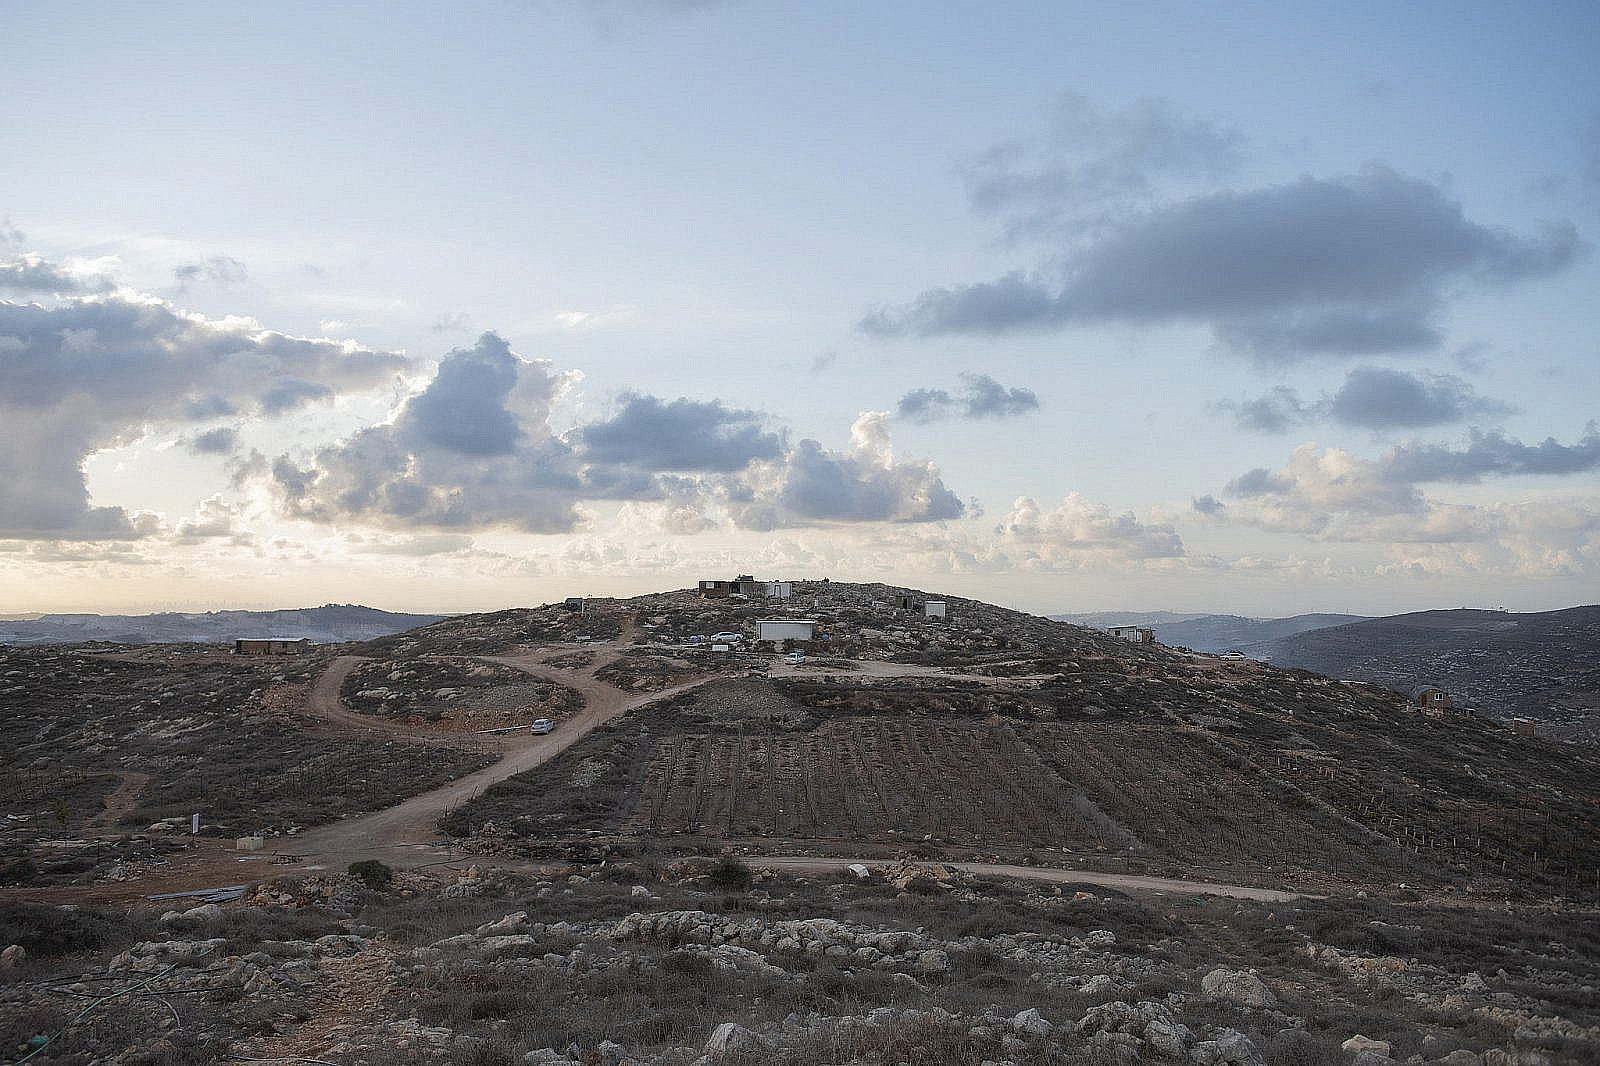 """View of the """"Komi Ori"""" outpost in the settlement of Yitzhar in the West Bank, on December 1, 2019. (Sraya Diamant/Flash90)"""